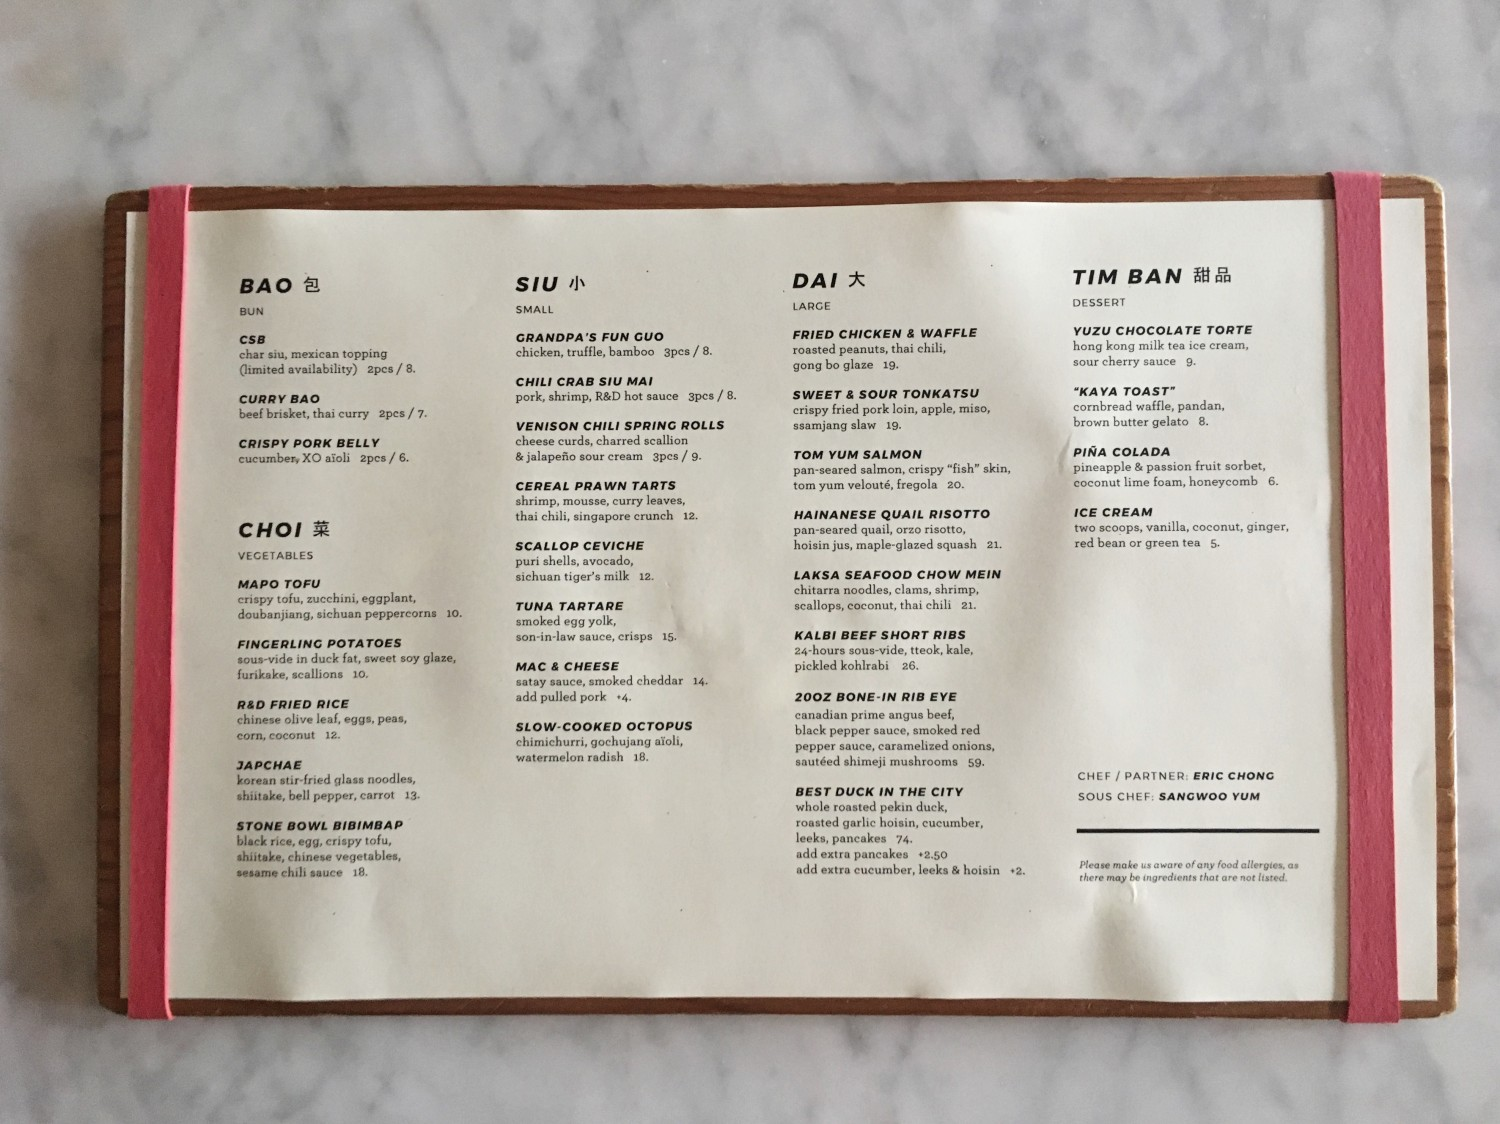 Food menu of R&D Spadina